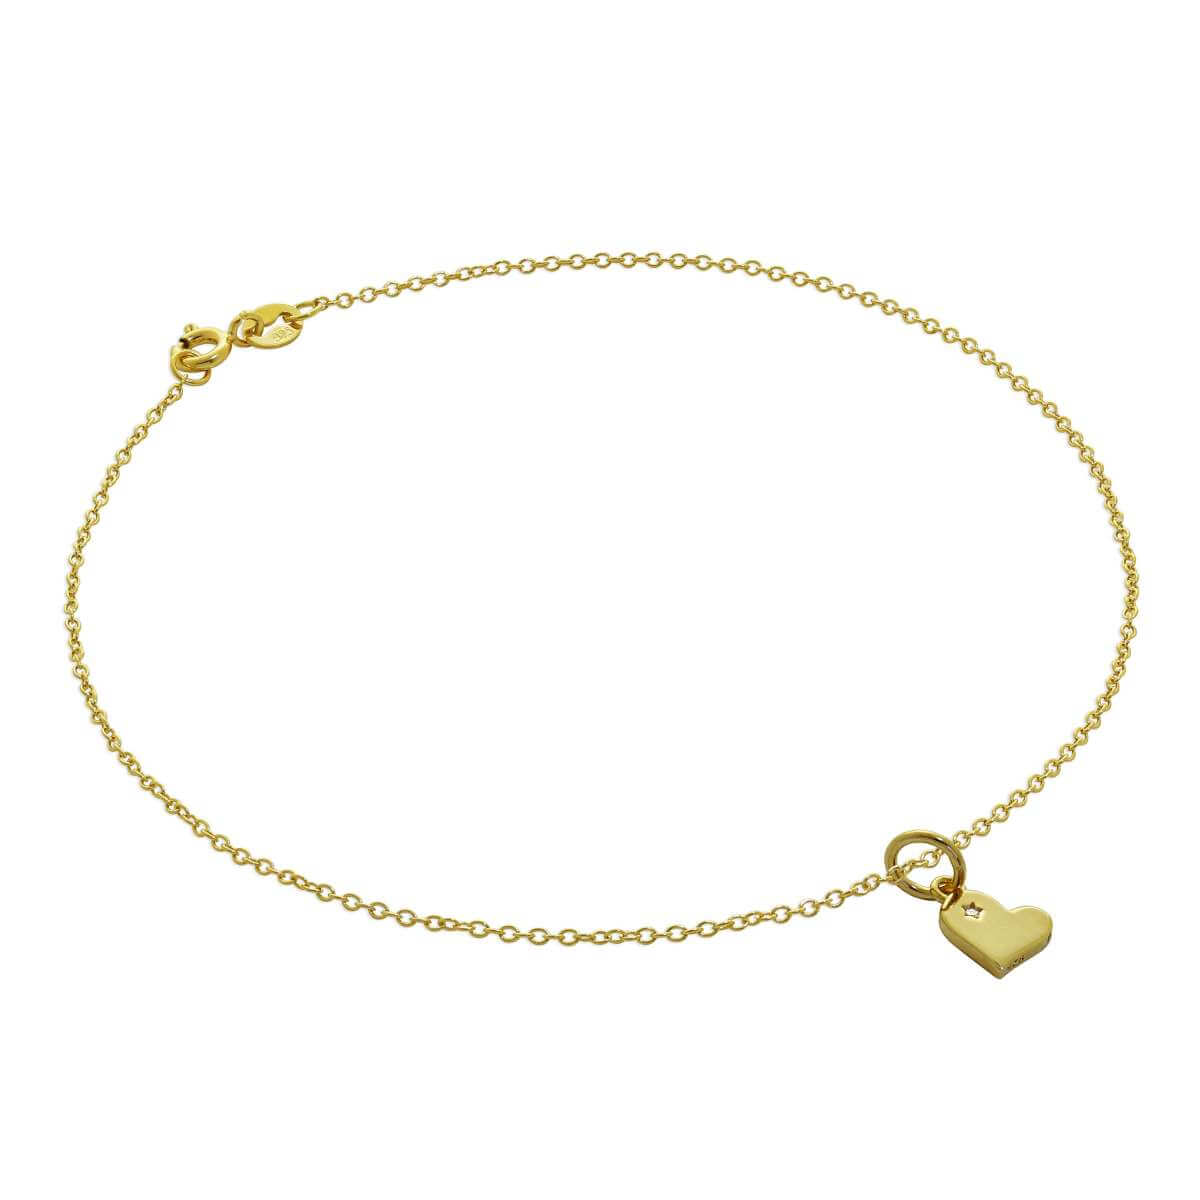 Gold Plated Sterling Silver Trace Chain Anklet with Genuine Diamond Heart Charm